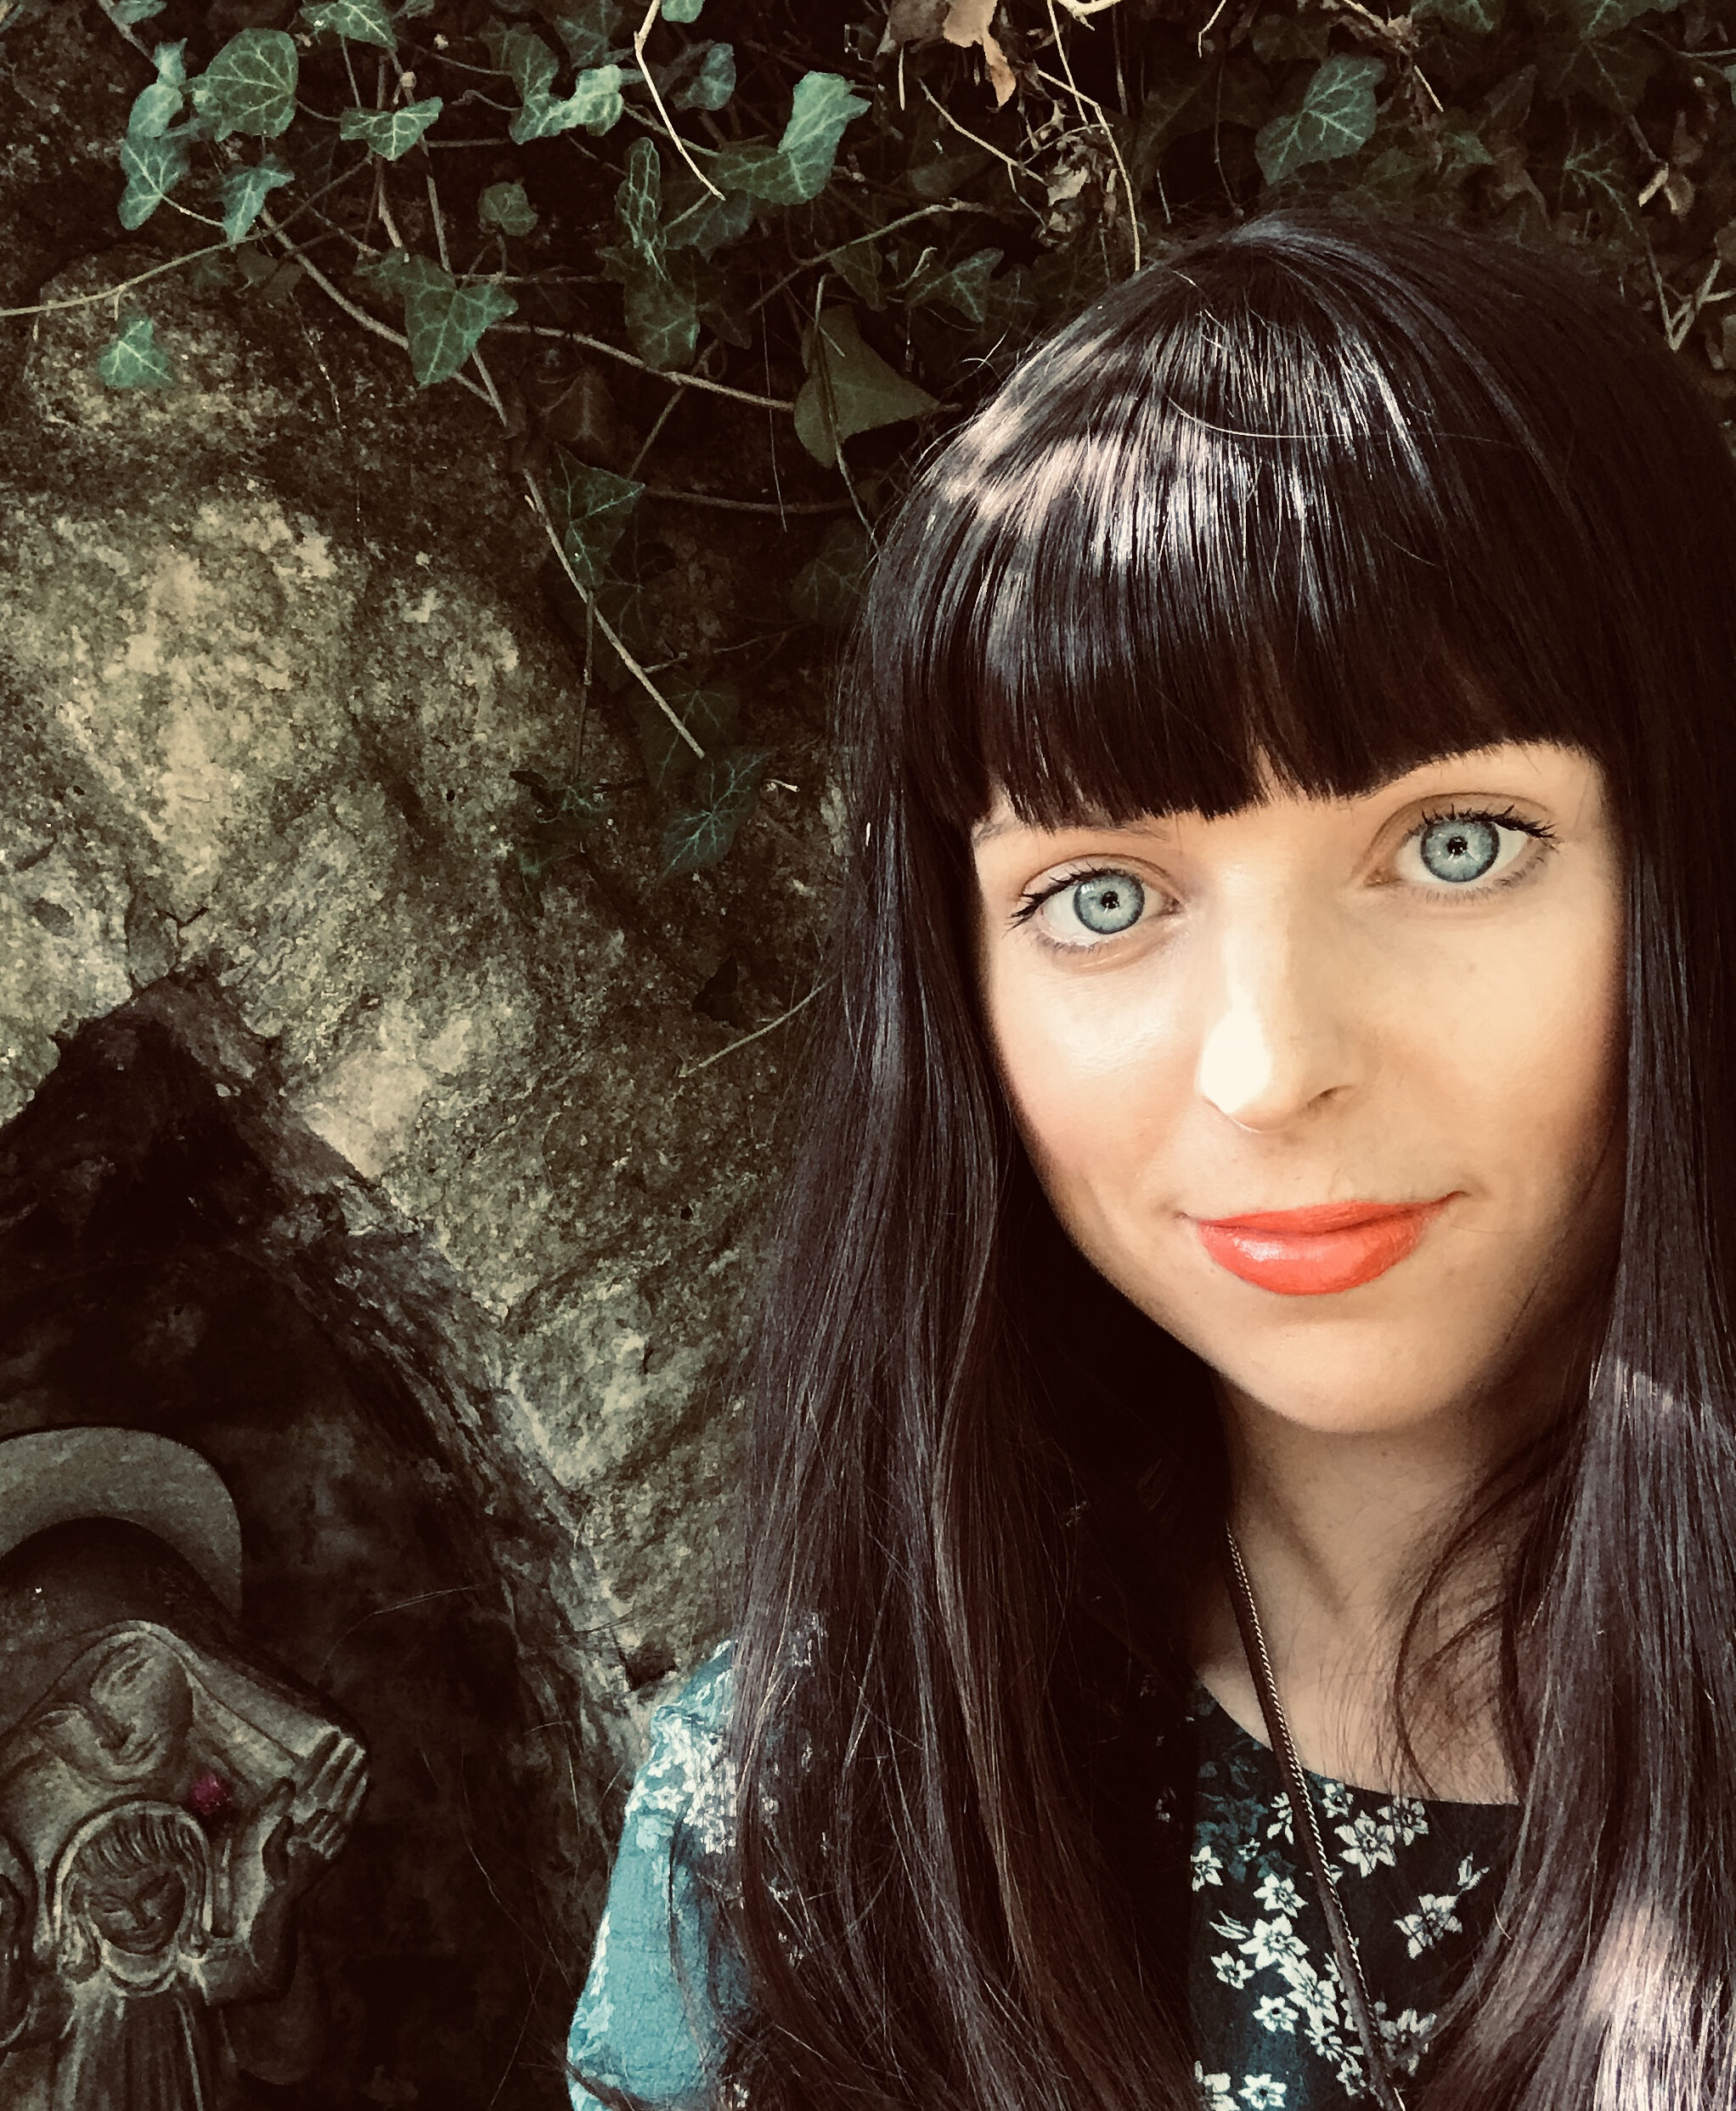 aBOUT MELANIE - Melanie specialises in Energy clearing and balancing to help you release energy, patterns and blockages no longer serving you, so you can live your full potential.Melanie is a gifted Intuitive Healer, Reiki and Seichim Sekhem Master, Intuitive, Hypnotherapist and Filmmaker.Melanie has studied an extensive range of transformative healing modalities, which are tailored to assist you on your unique wellness journey.